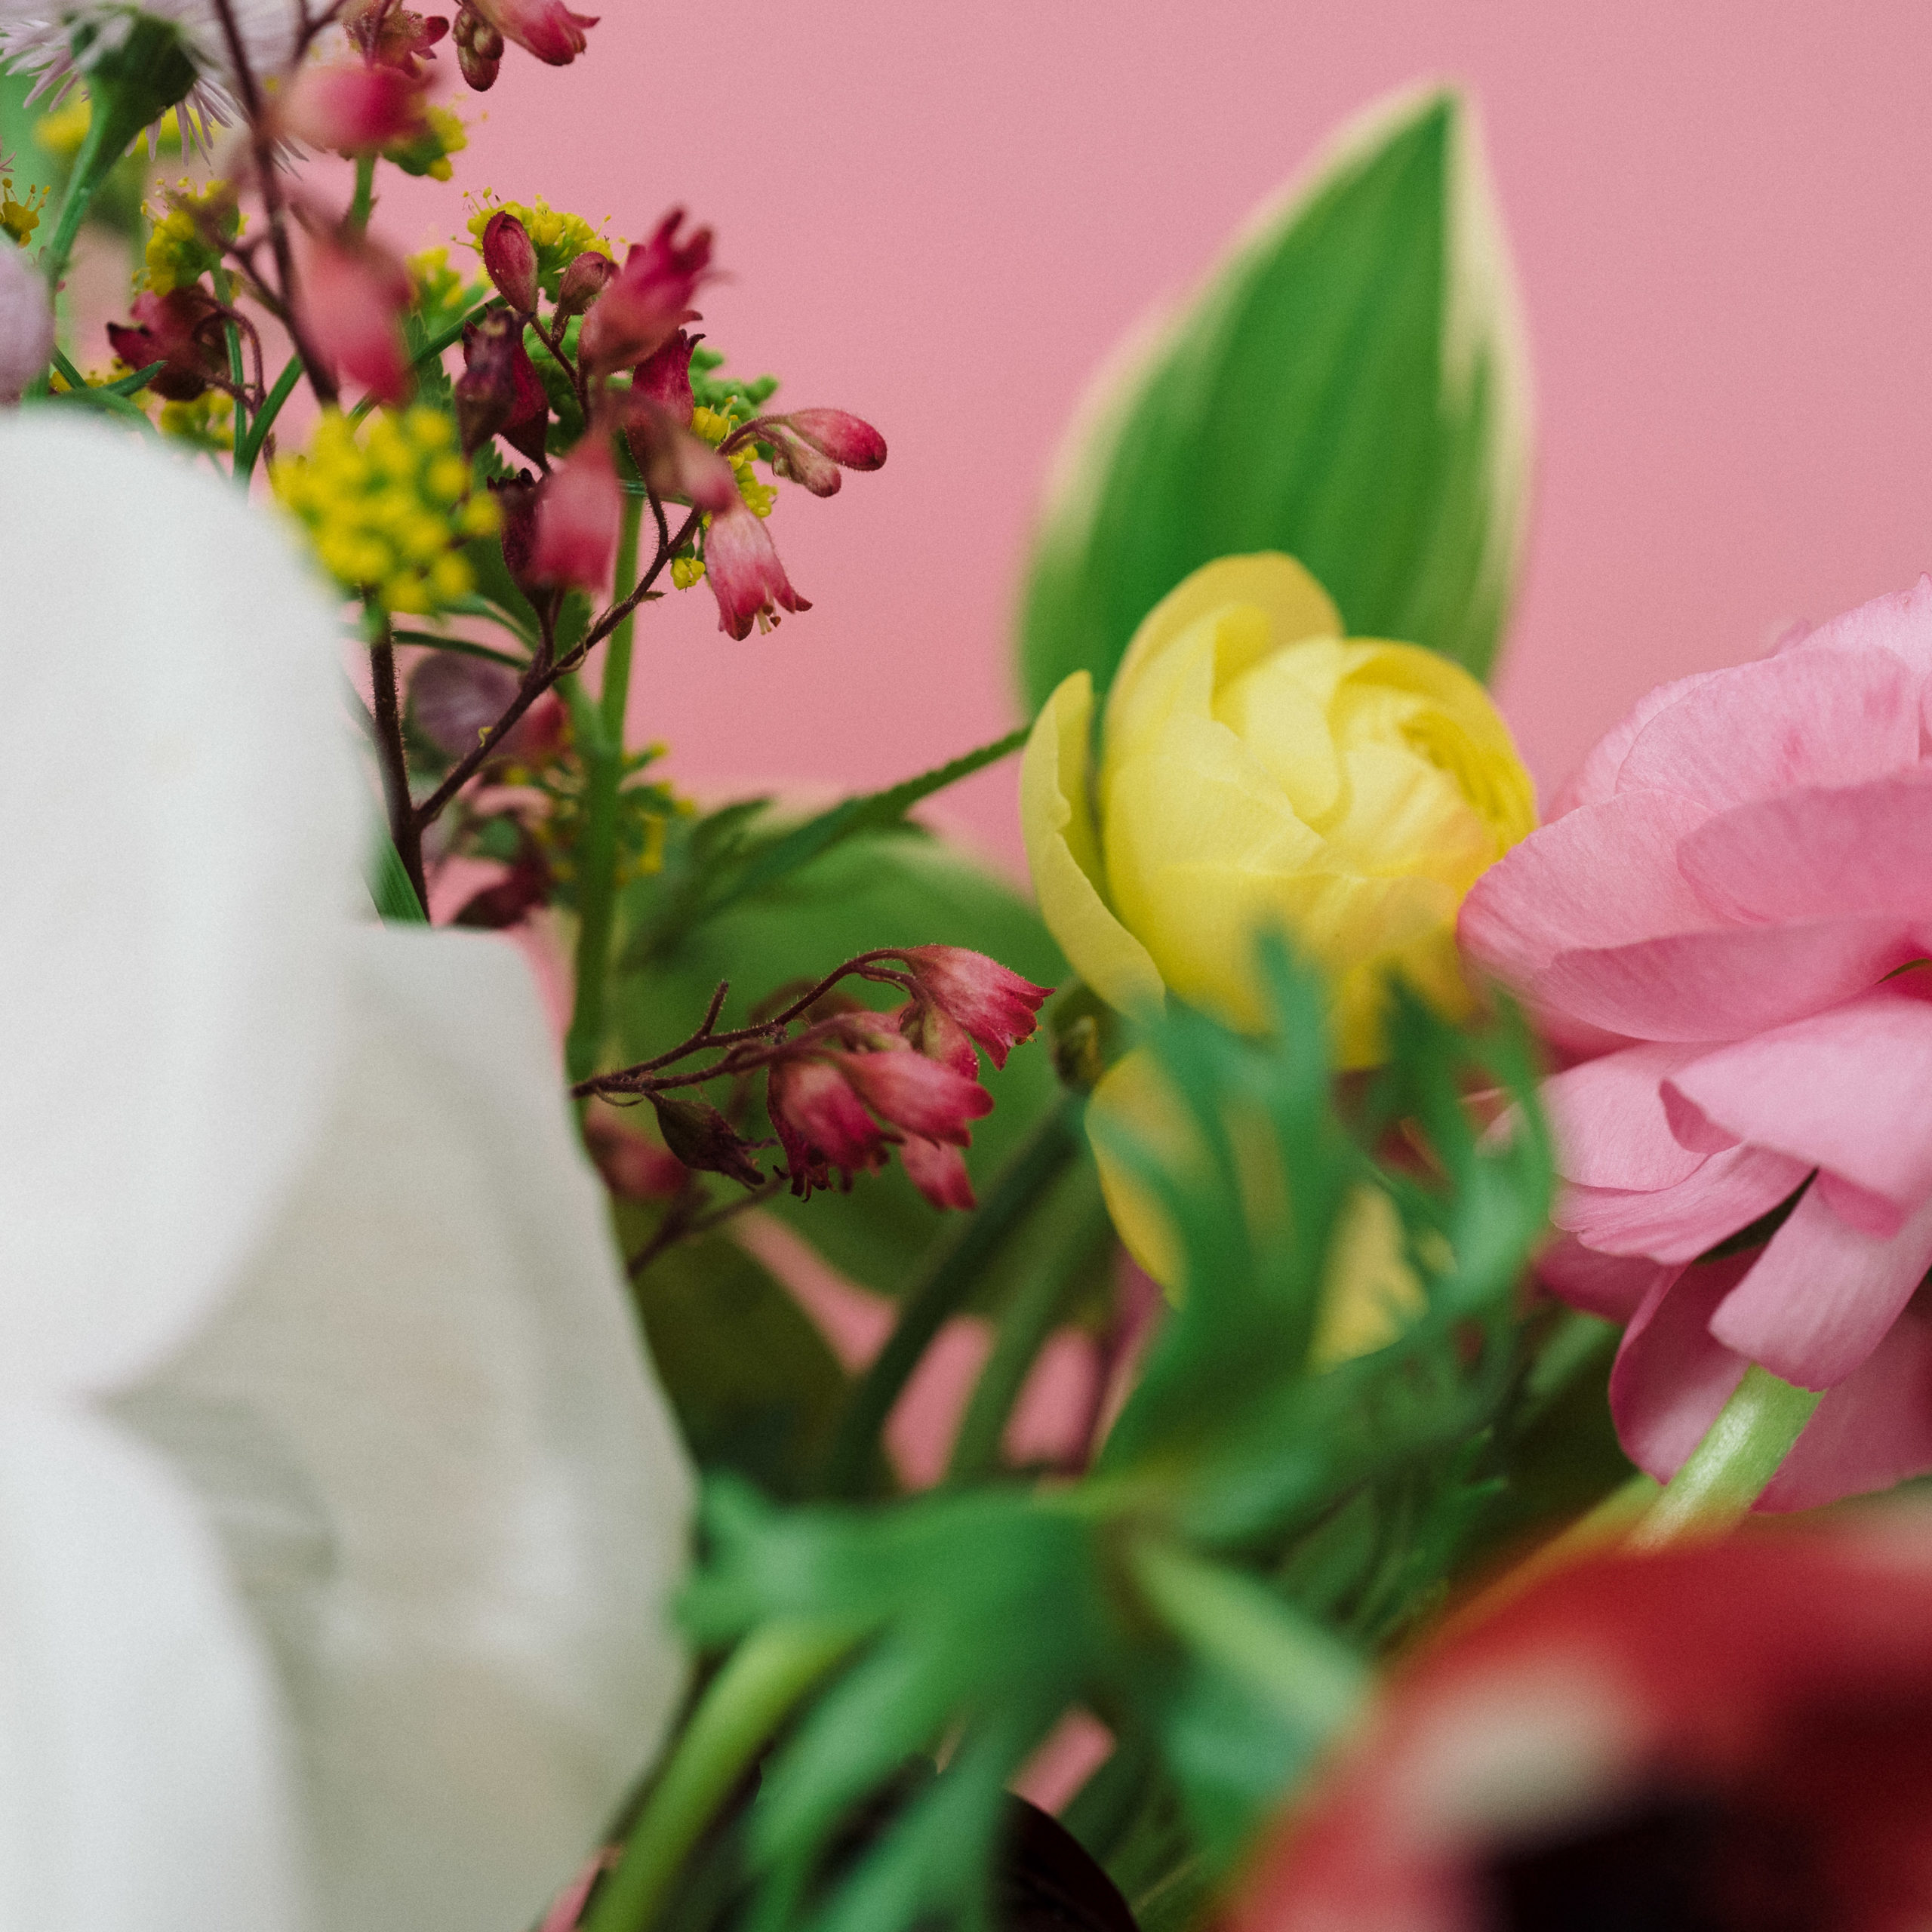 Detail of a bouquet of flowers